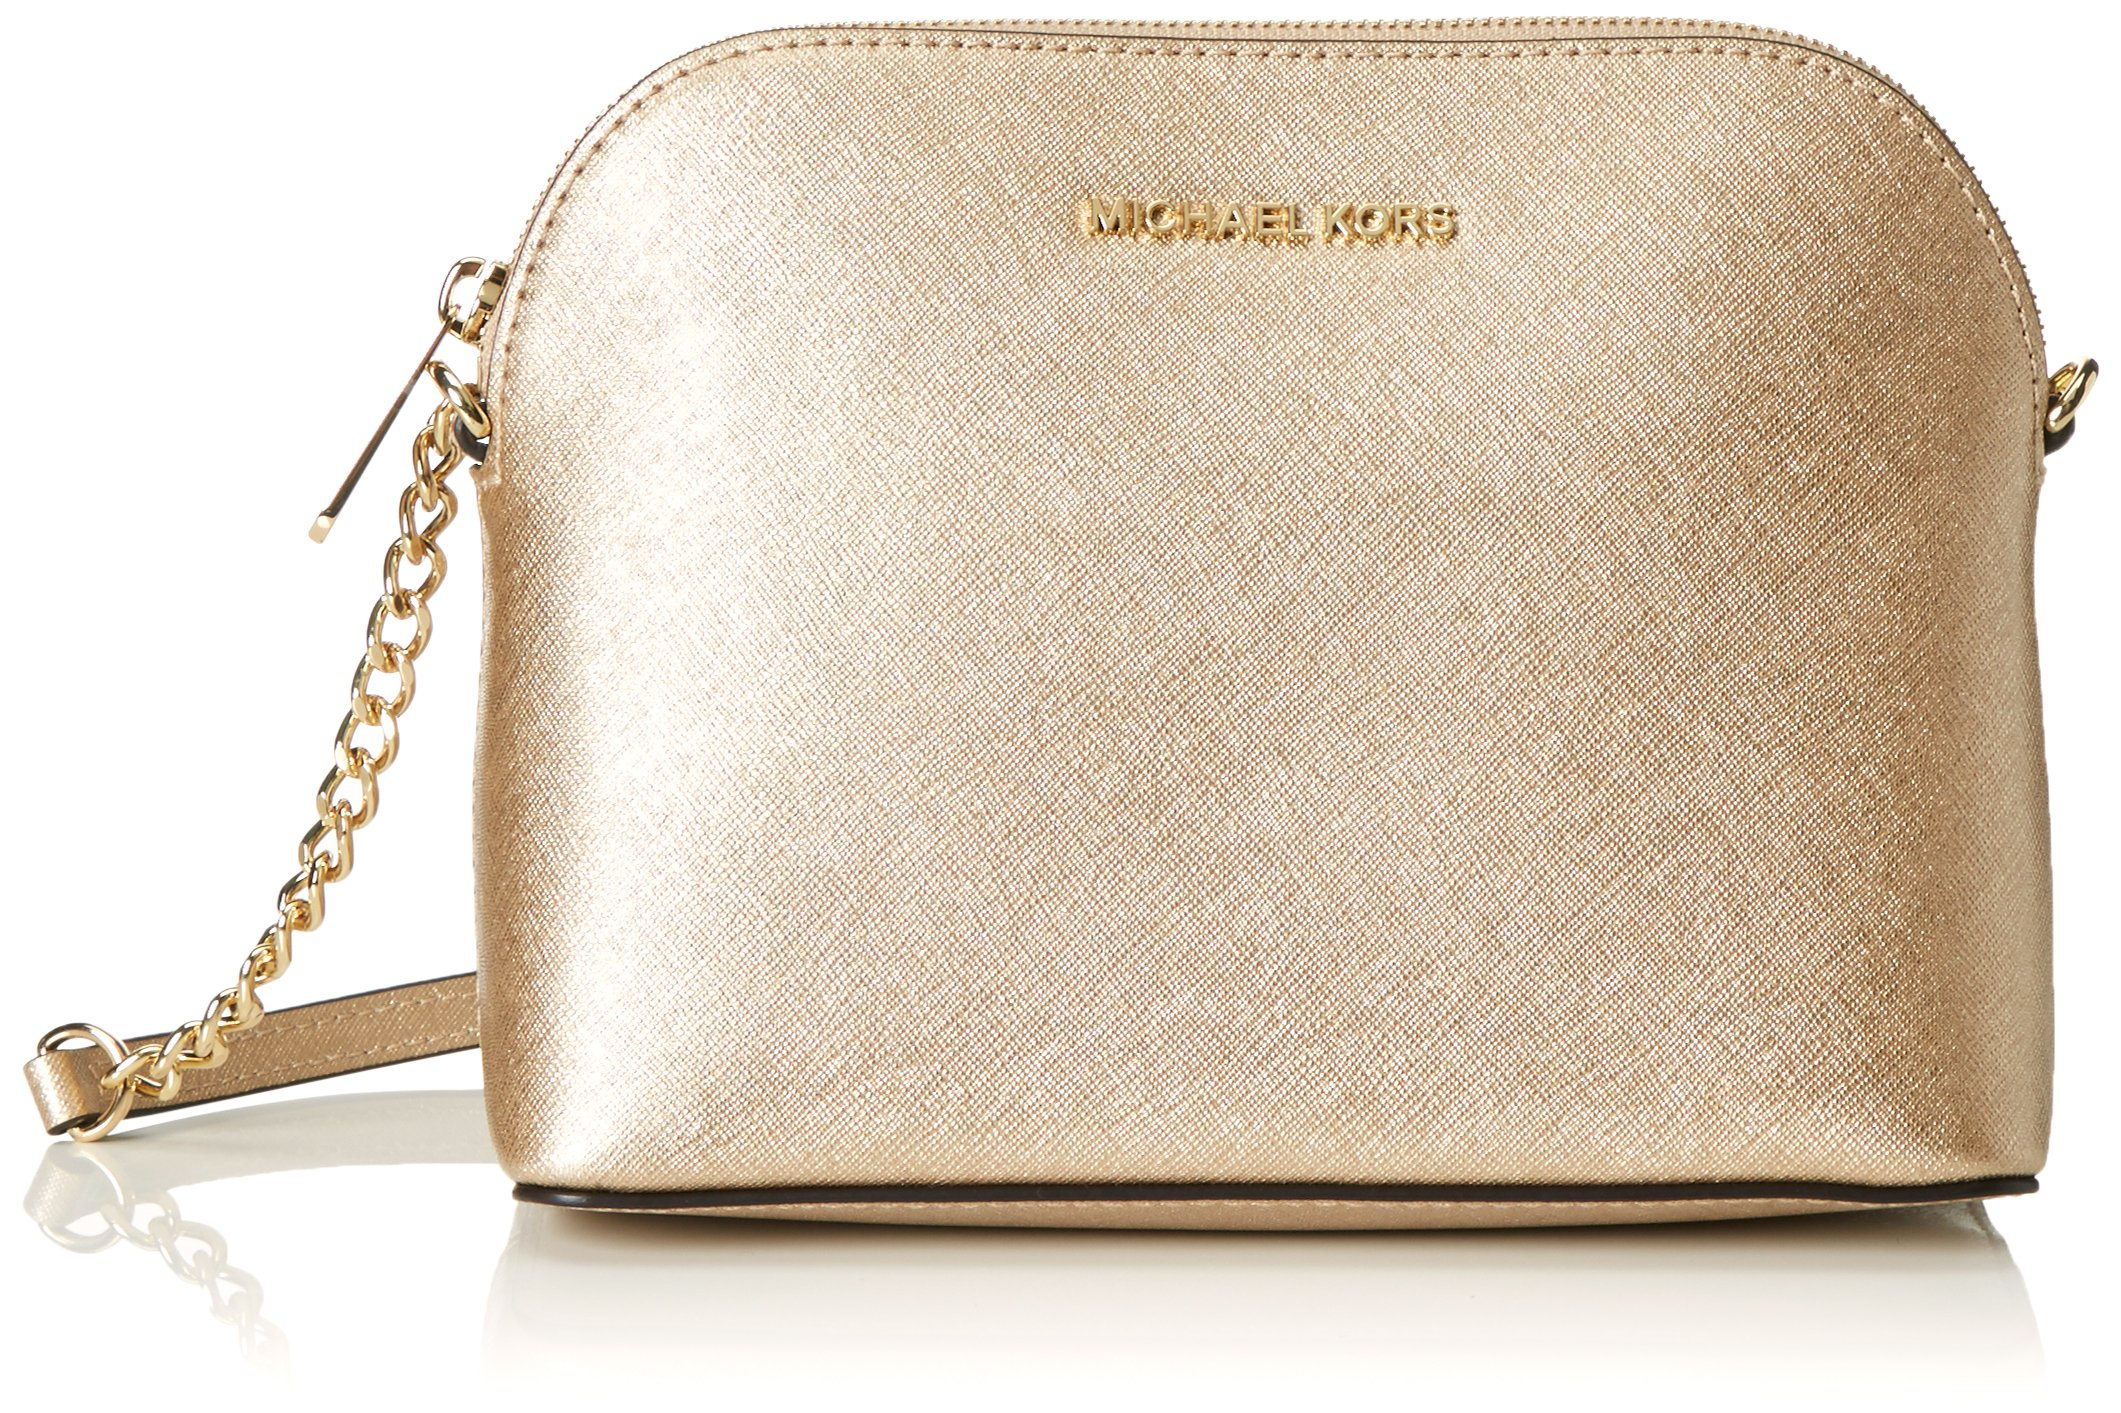 Michael Kors Cindy Leather Large Dome Crossbody Pale Gold